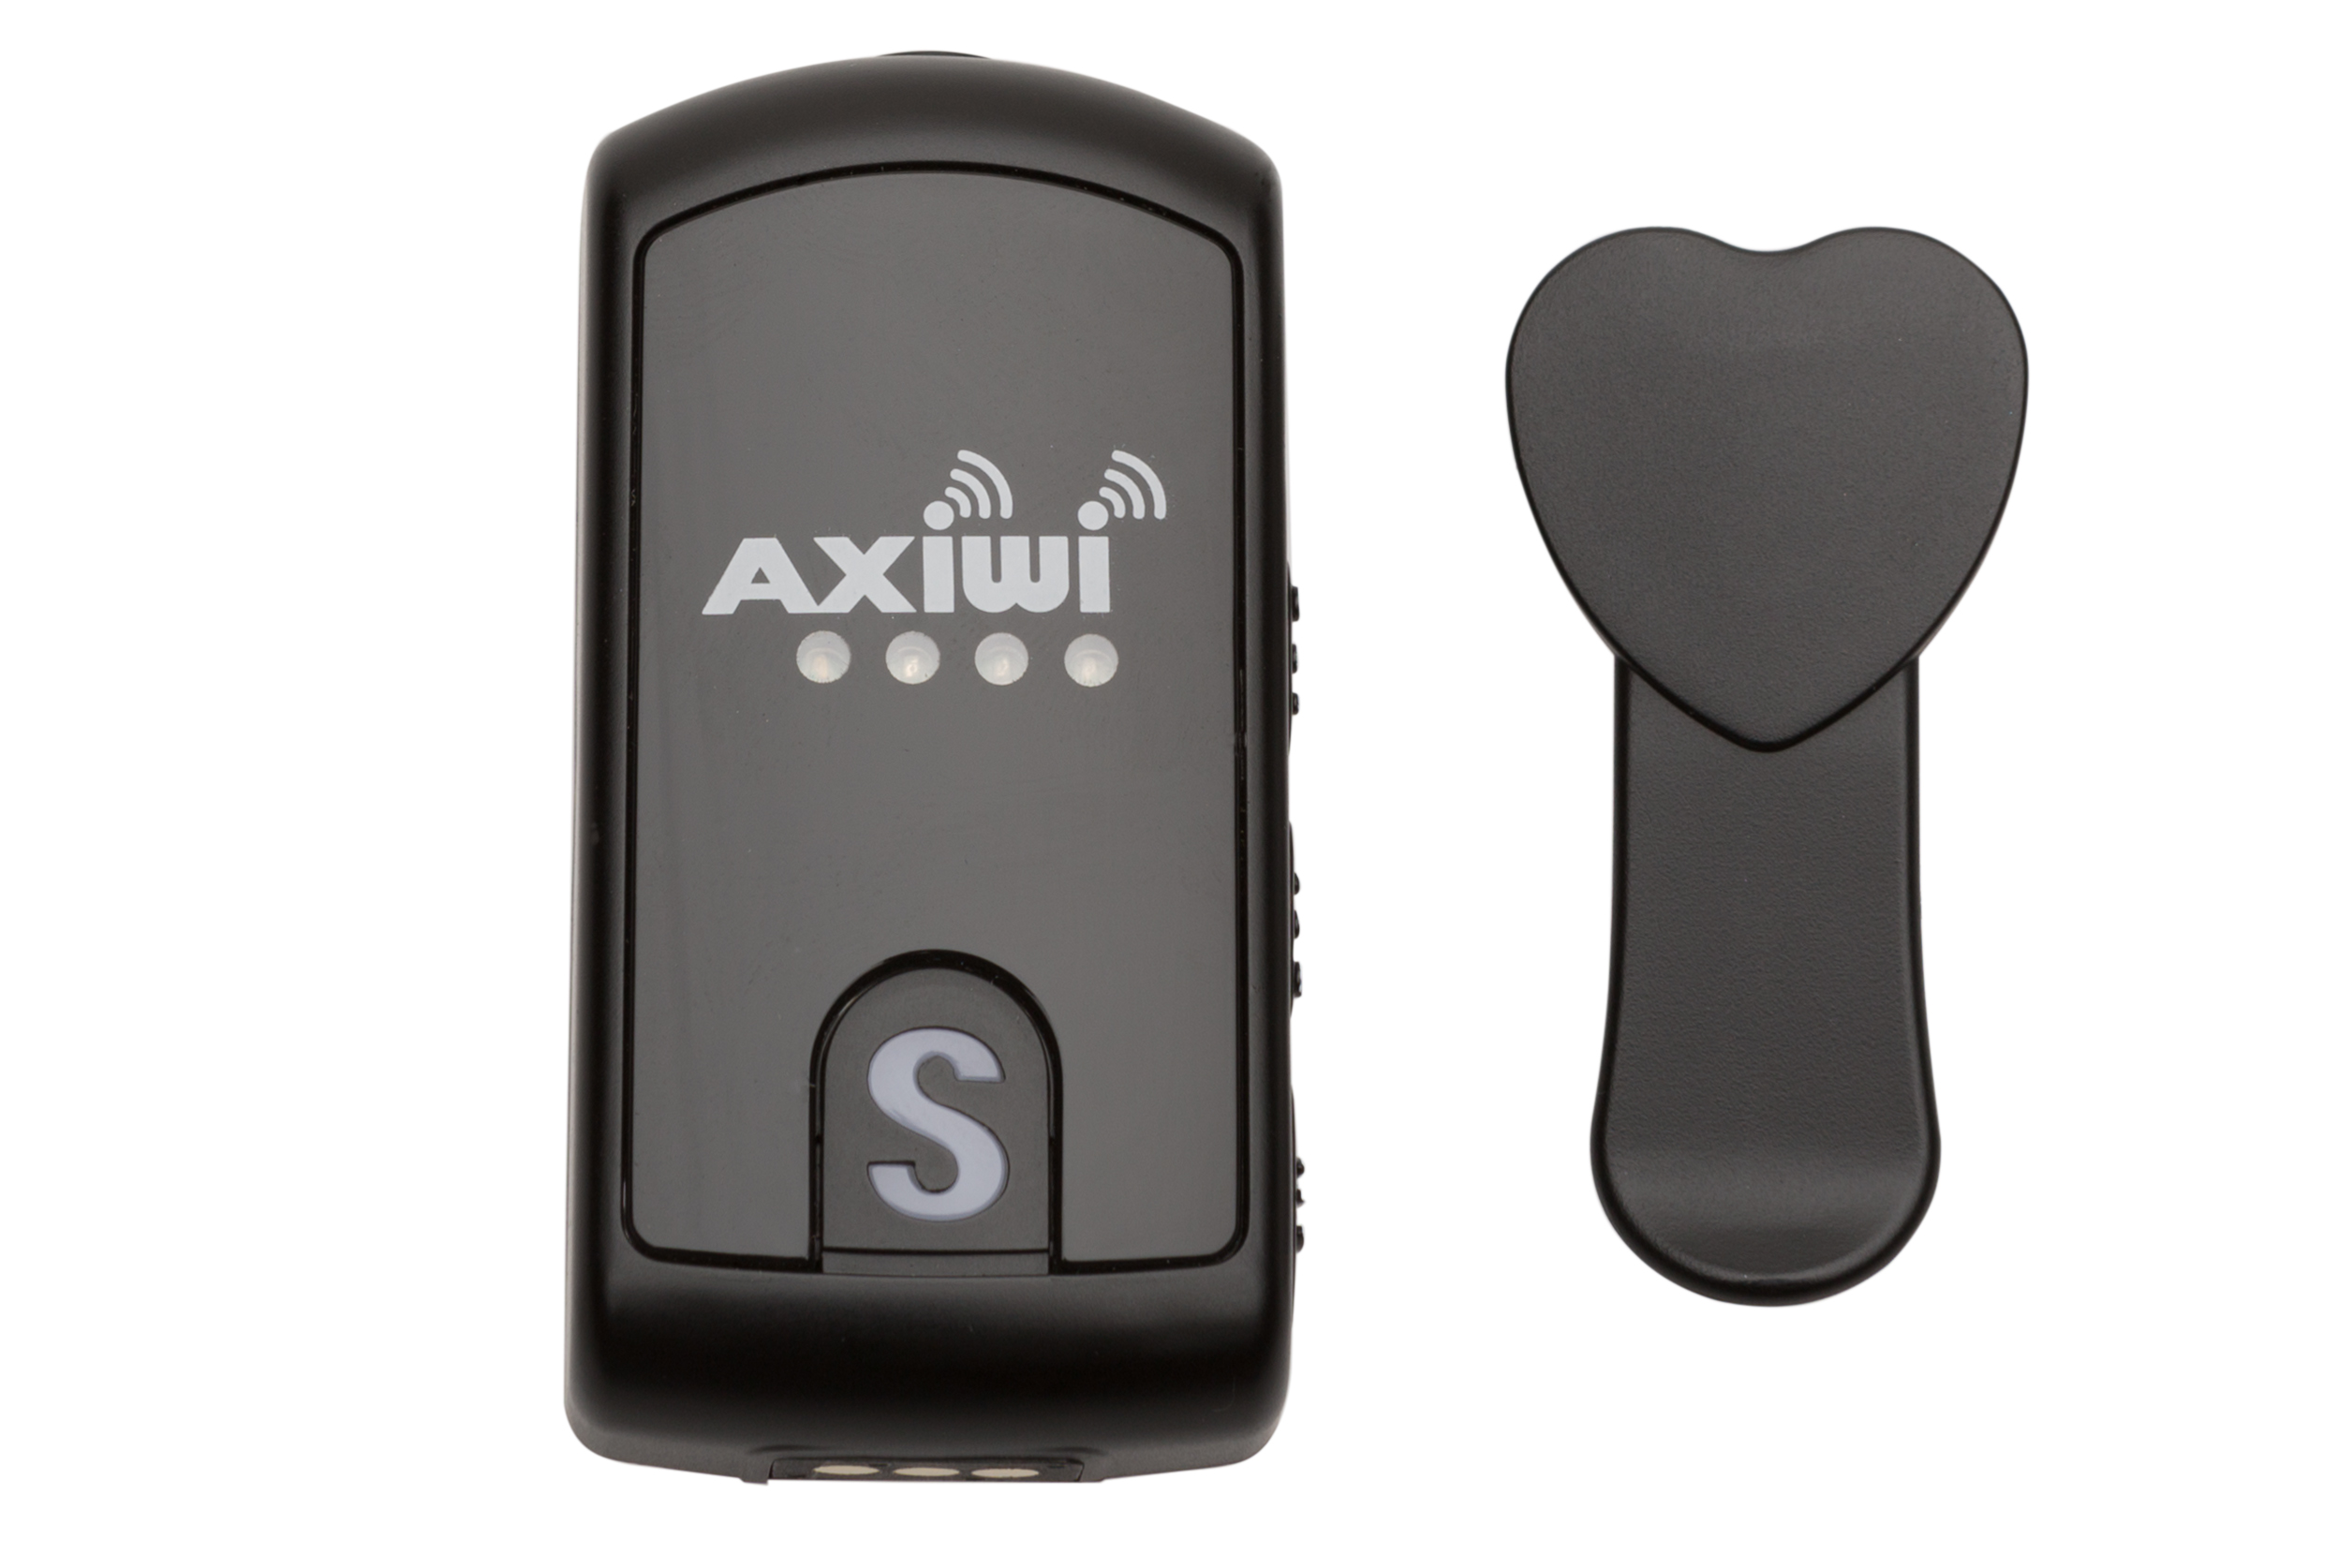 axitour-axiwi-at-320-communication-system-clip